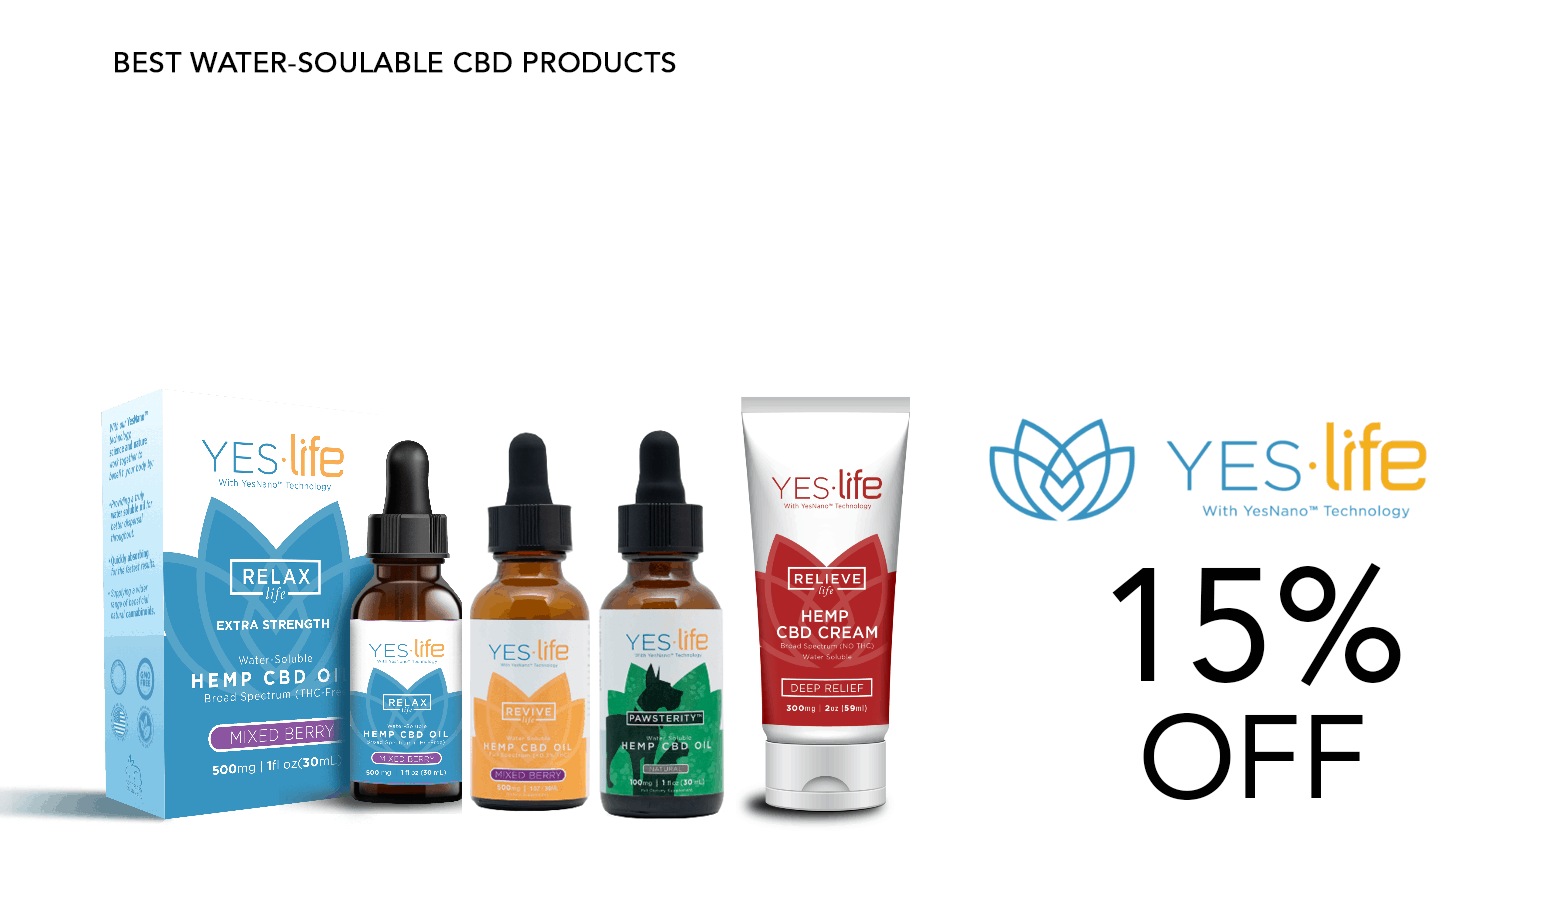 Yes.Life CBD Coupon Code Offer Website